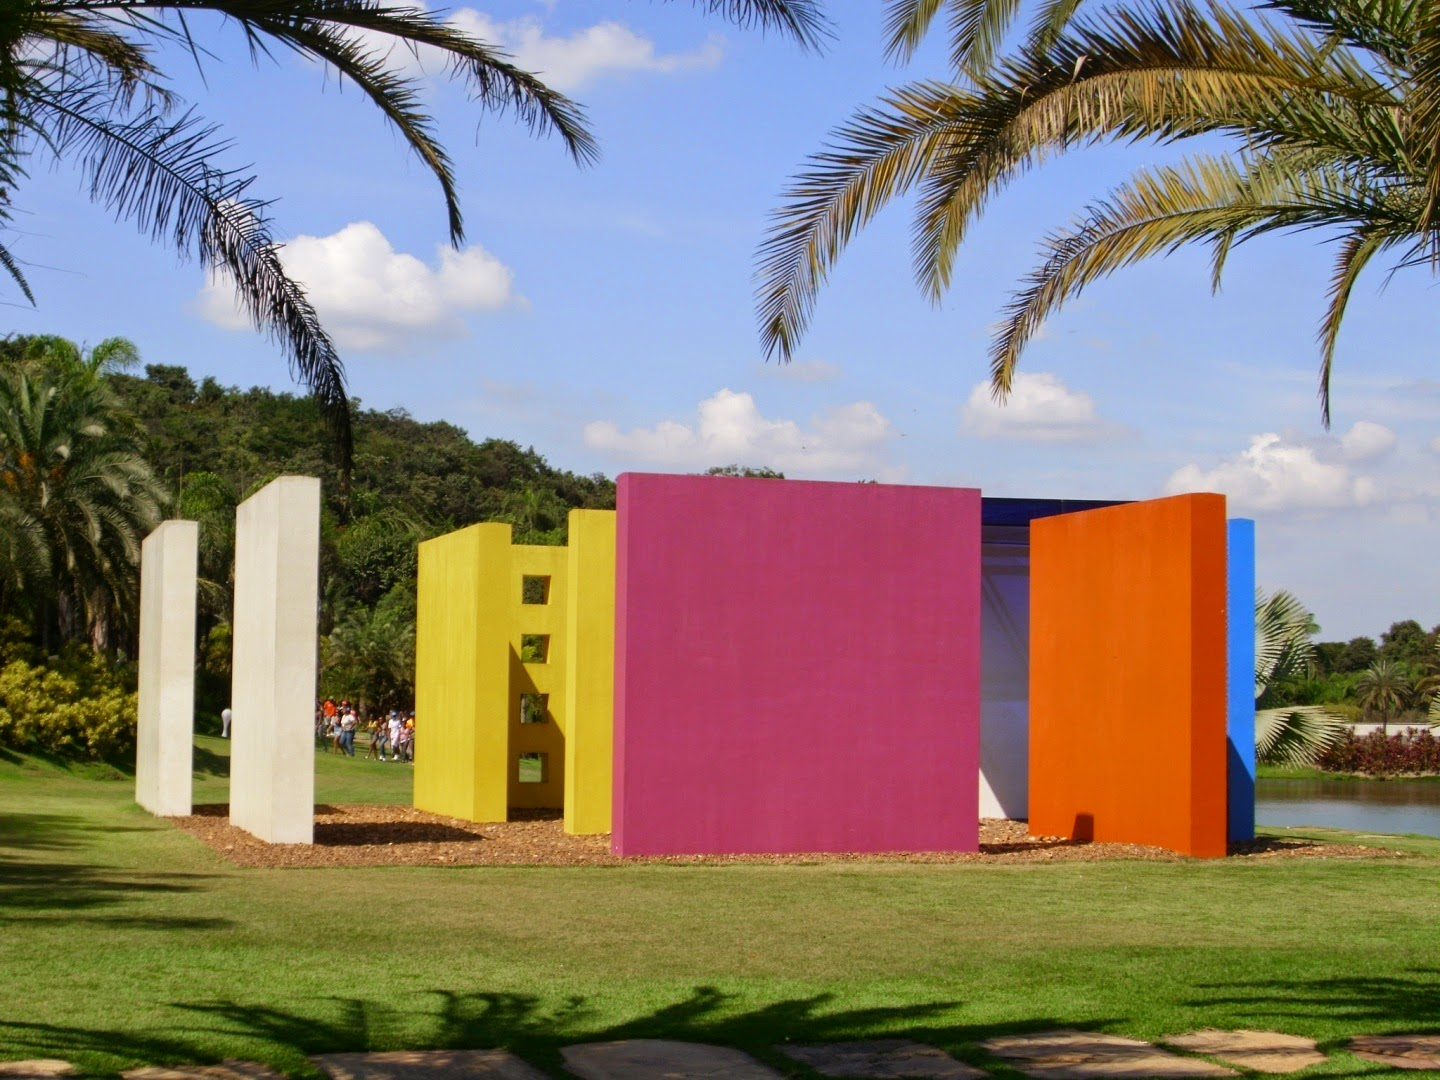 Inhotim, escultura Penetrável Magic Square de Hélio Oiticica